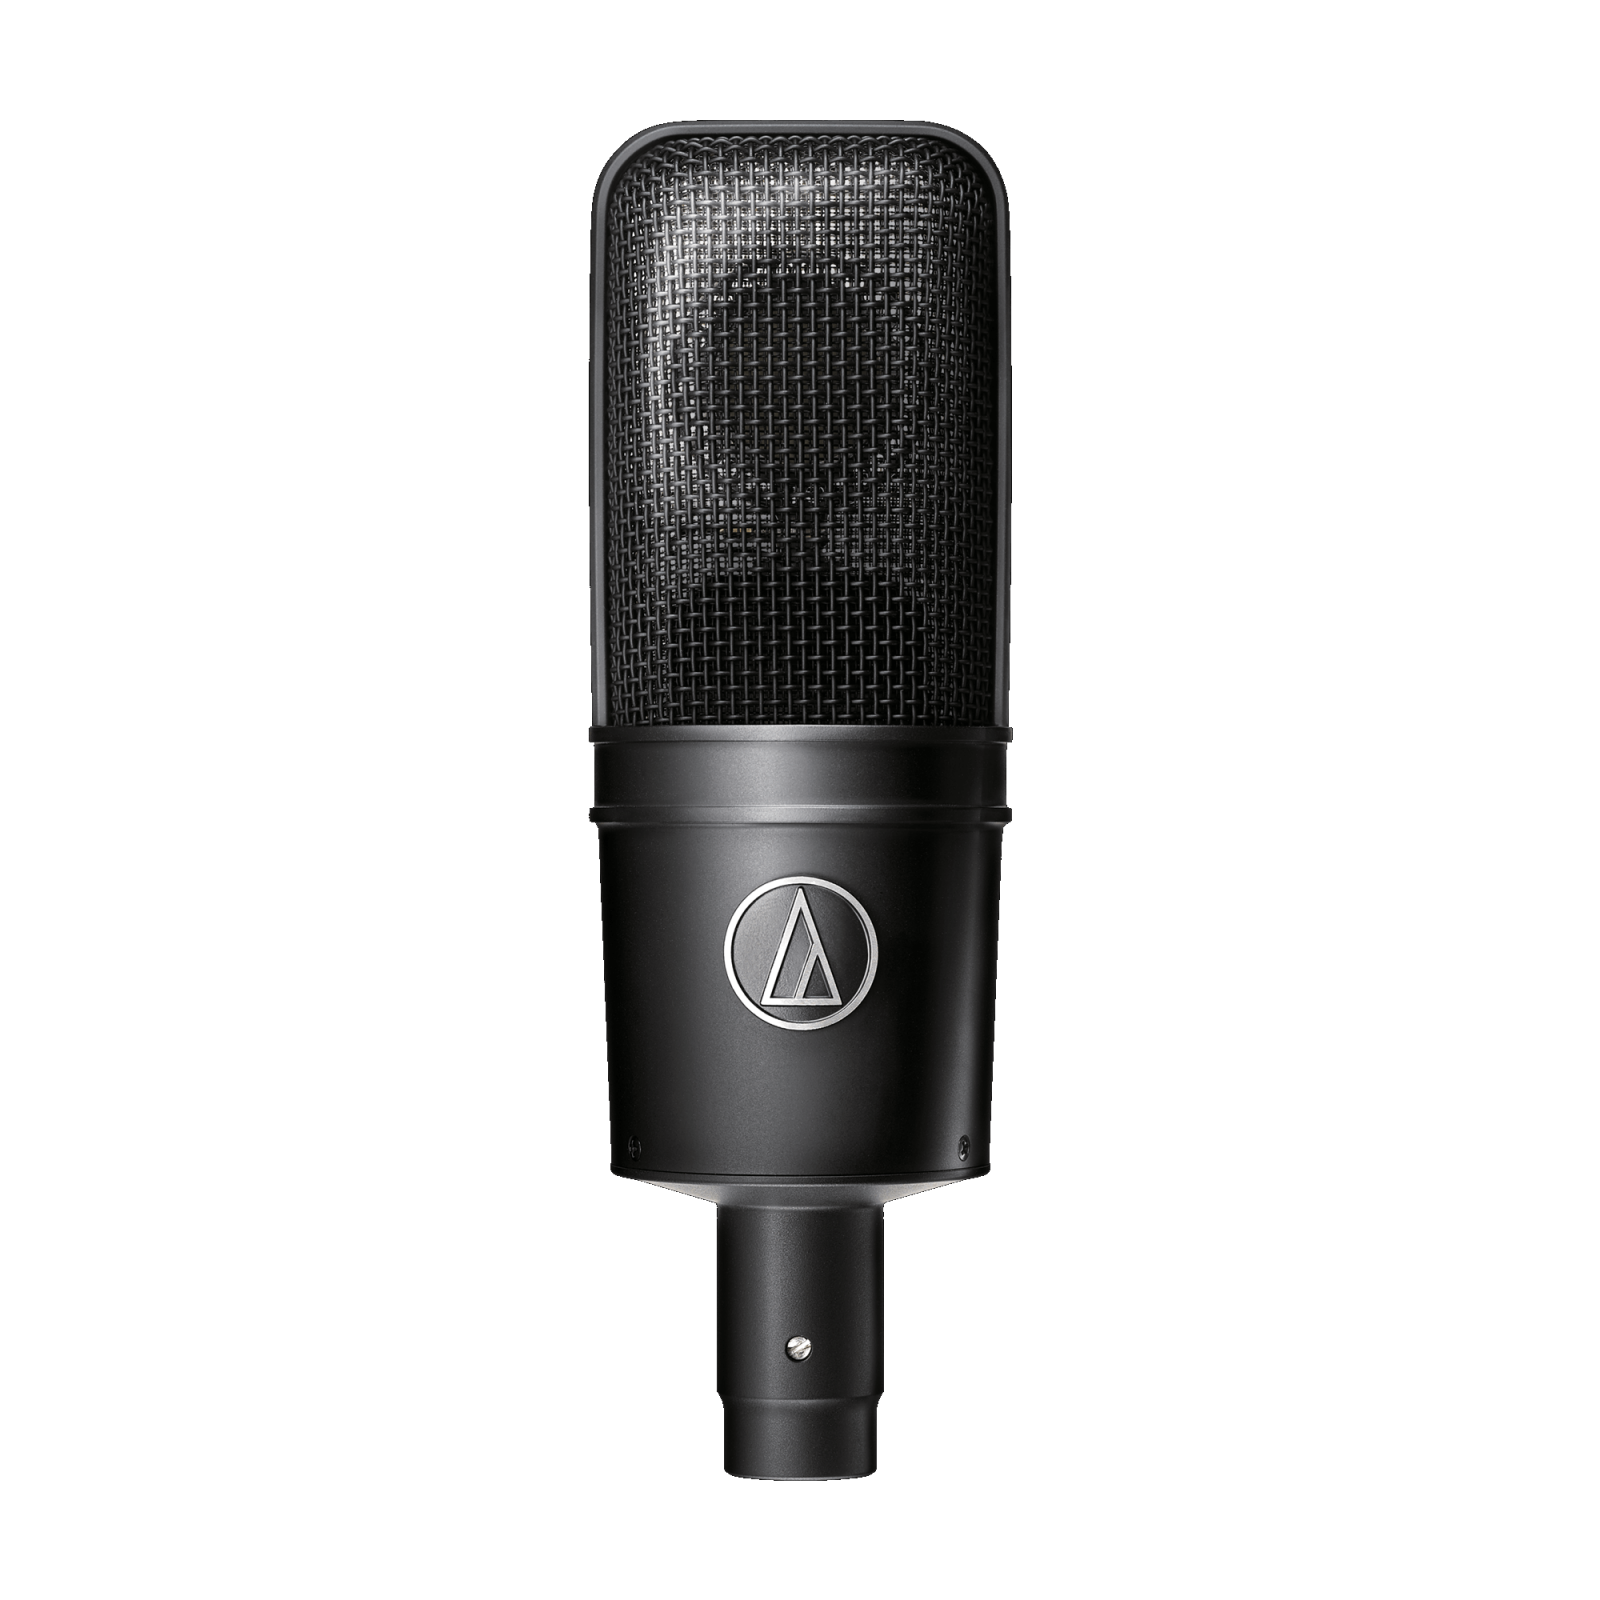 Audio-Technica AT4040 Cardioid Condenser Side-Address Microphone